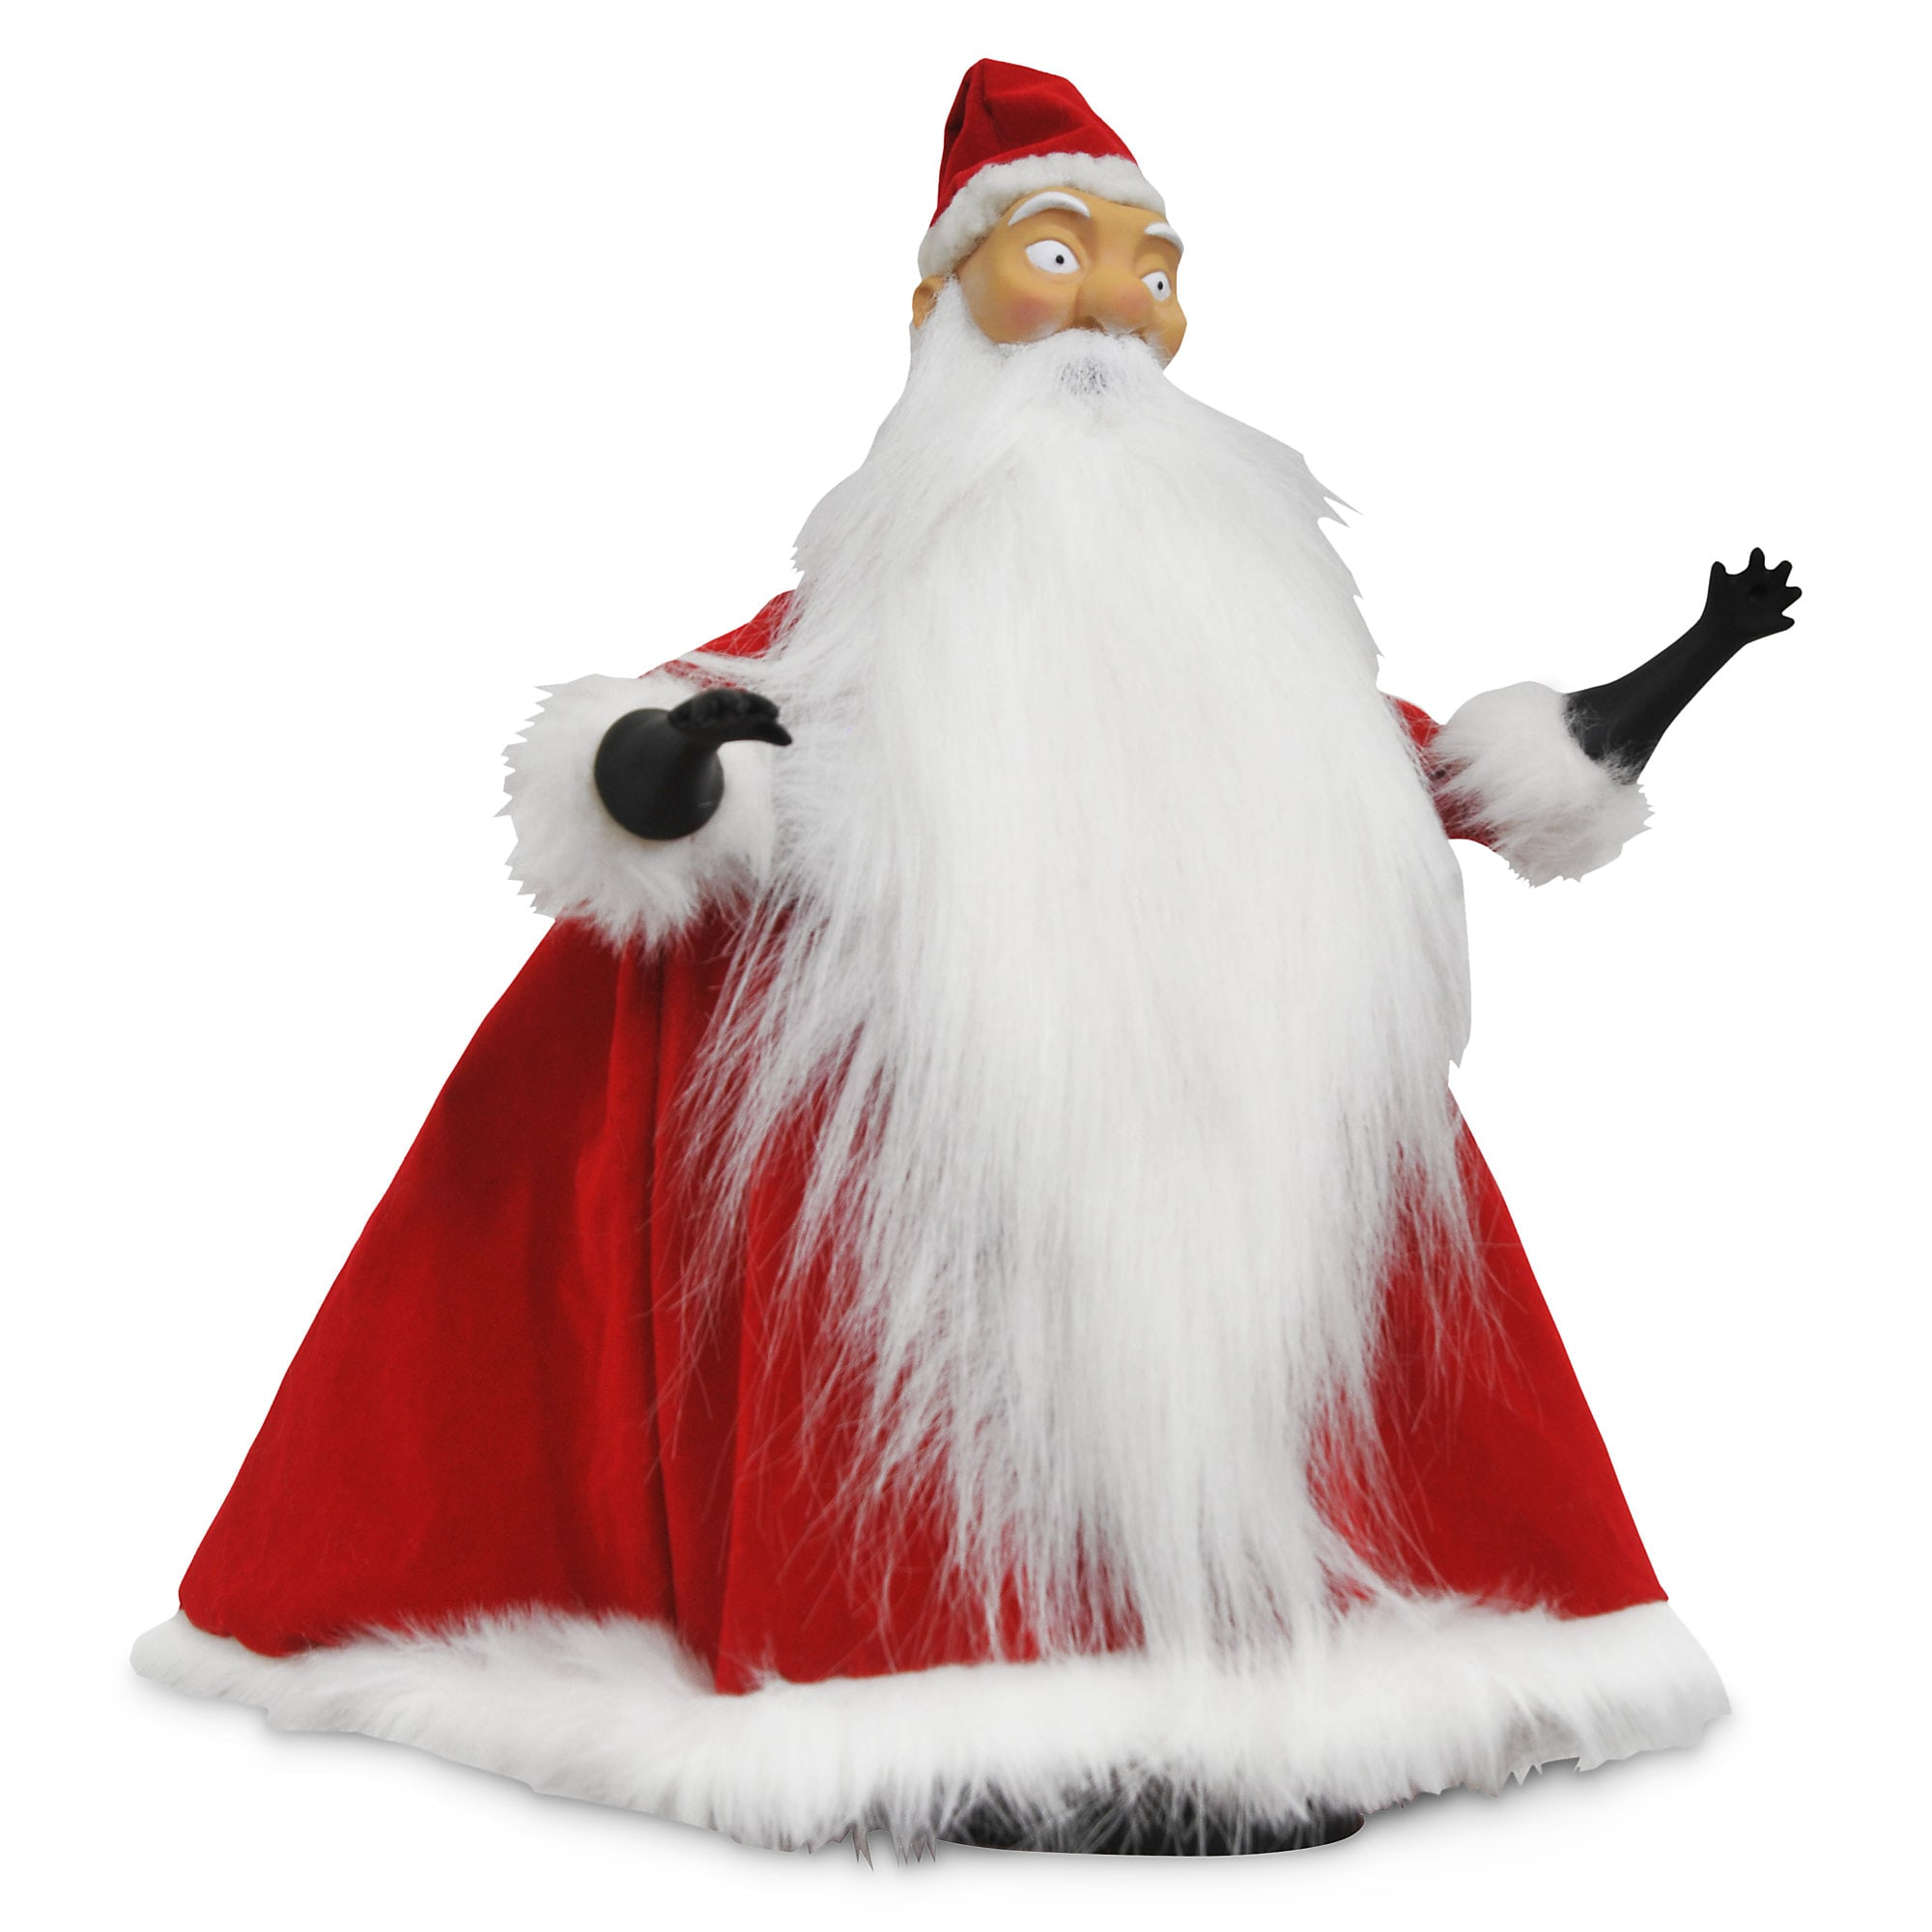 Santa Claus Deluxe Doll - The Nightmare Before Christmas